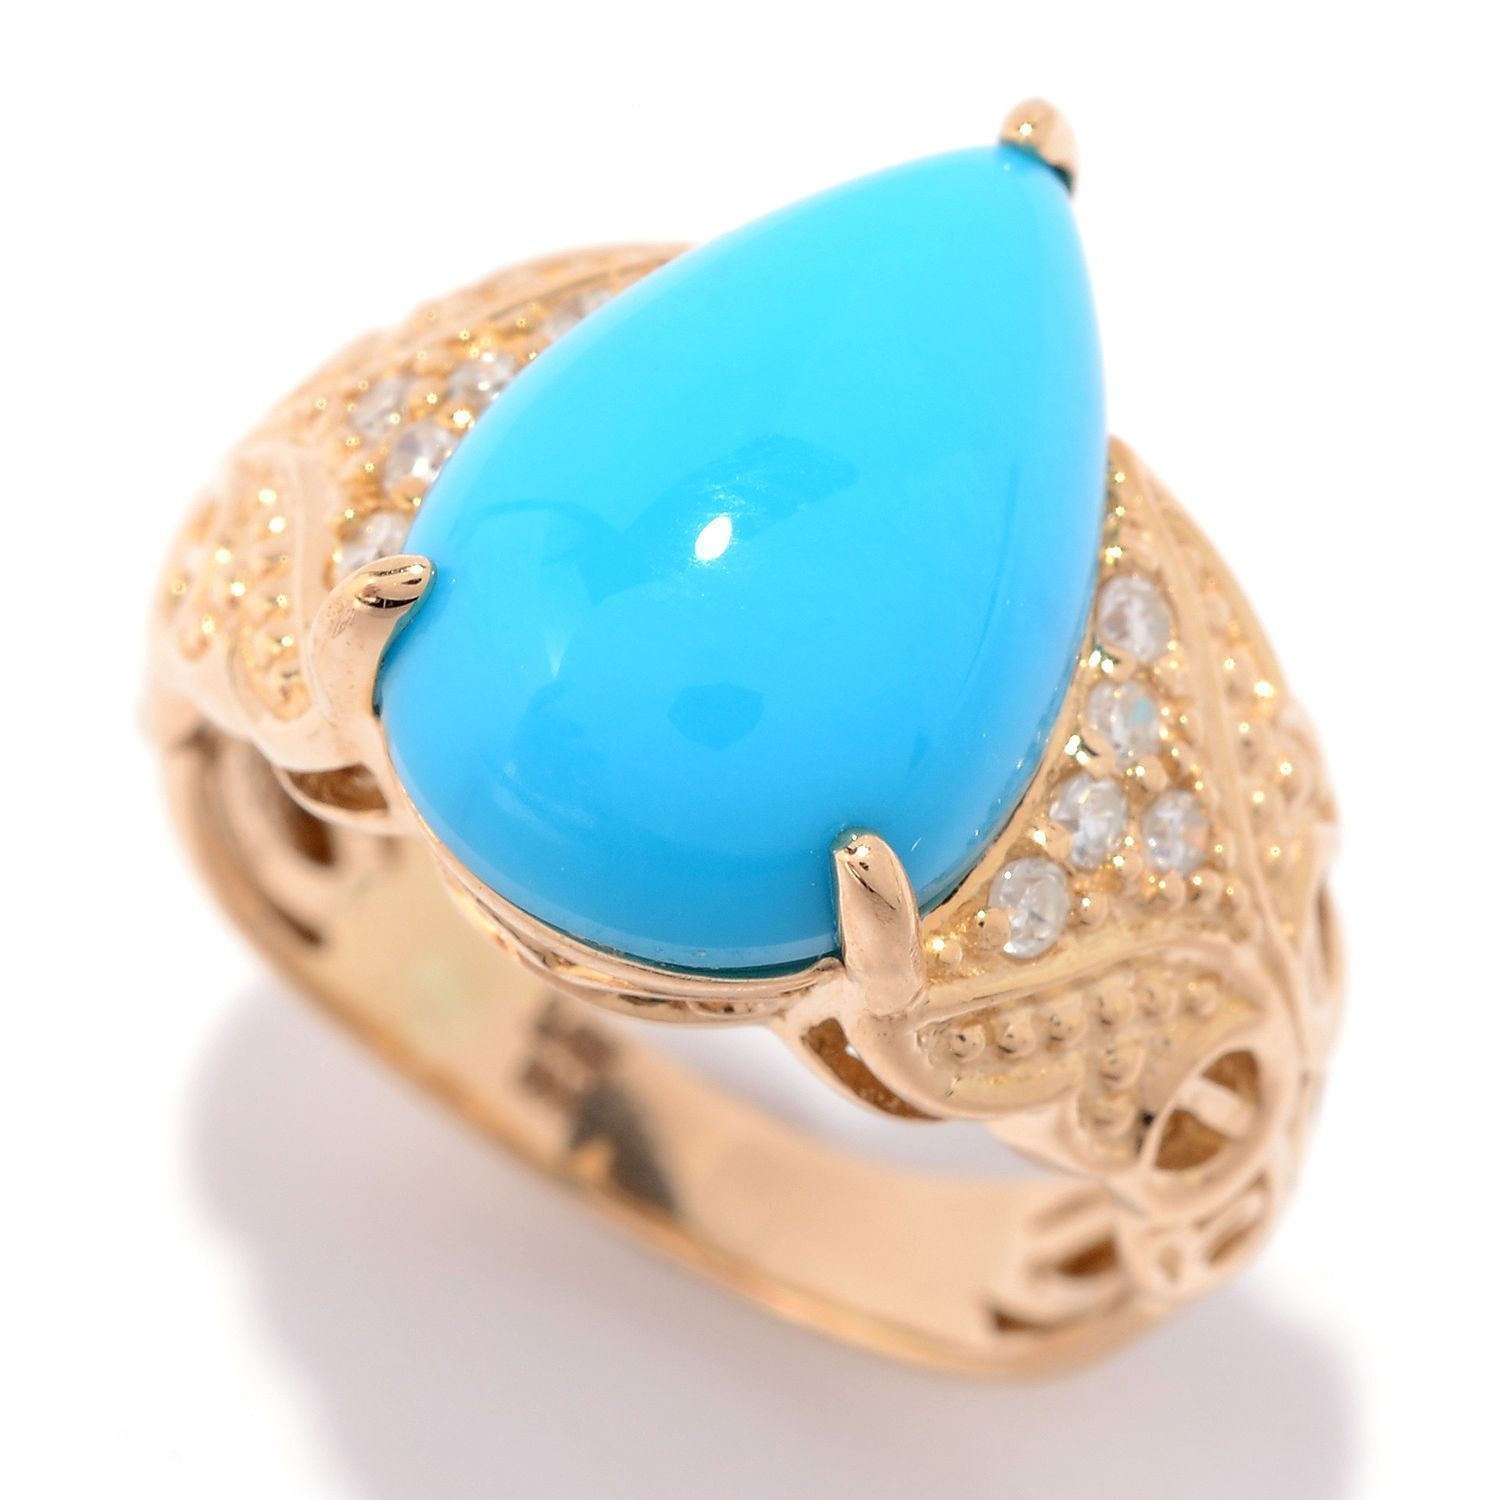 pearl seed diamond s antiques ring product turquoise kay